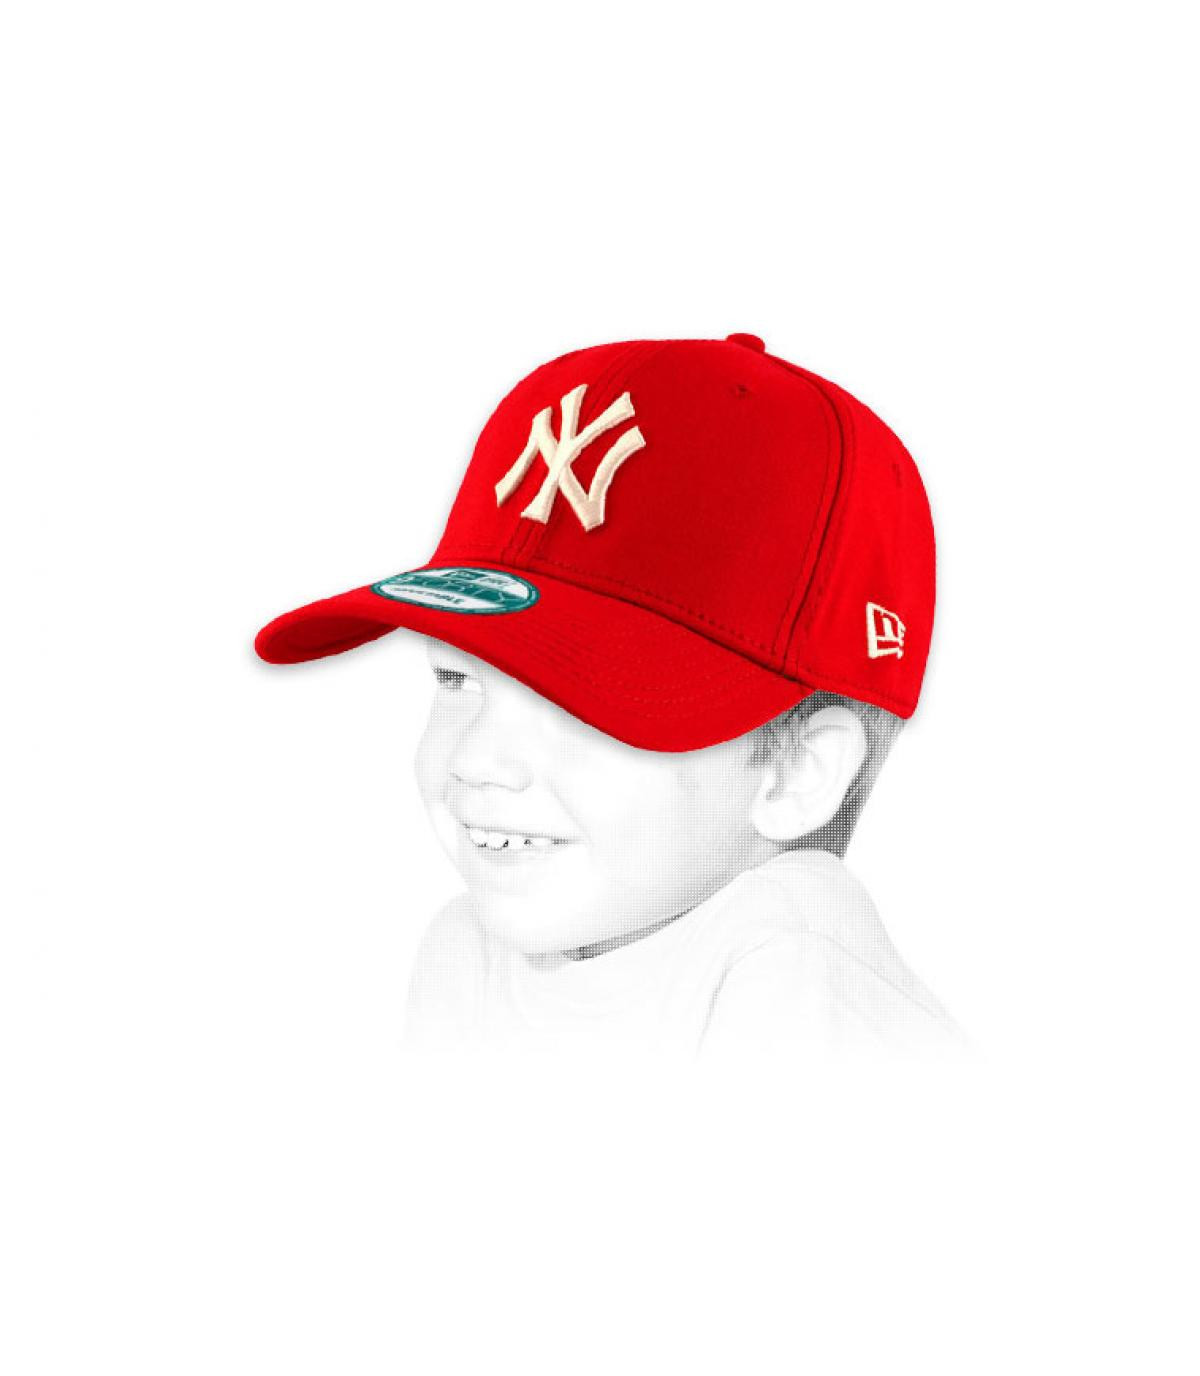 Details Child 9Forty NY red - afbeeling 2